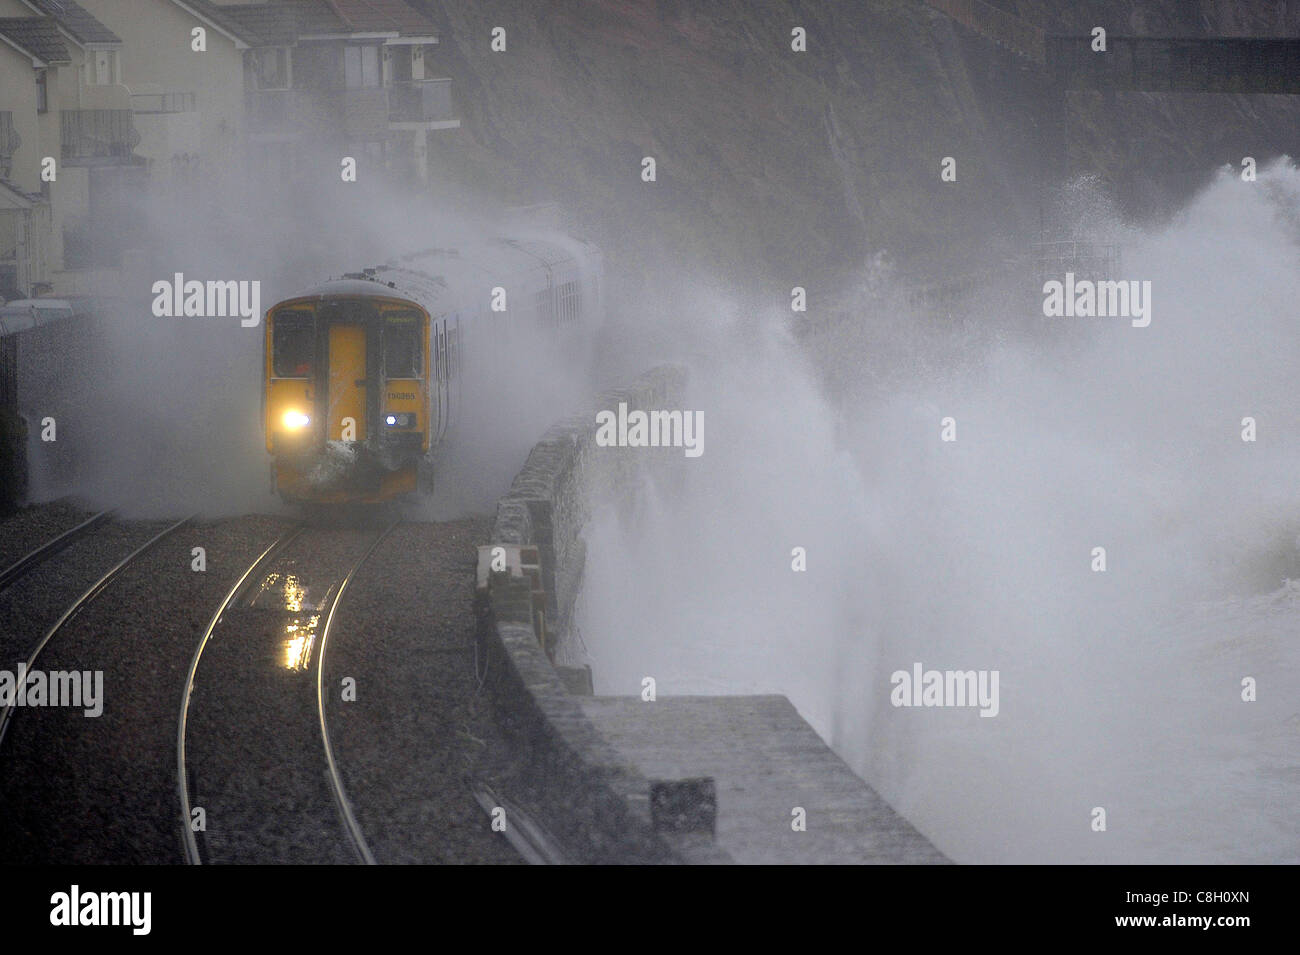 A train is battered by waves at Dawlish in Devon as storms hit the south west of England. - Stock Image